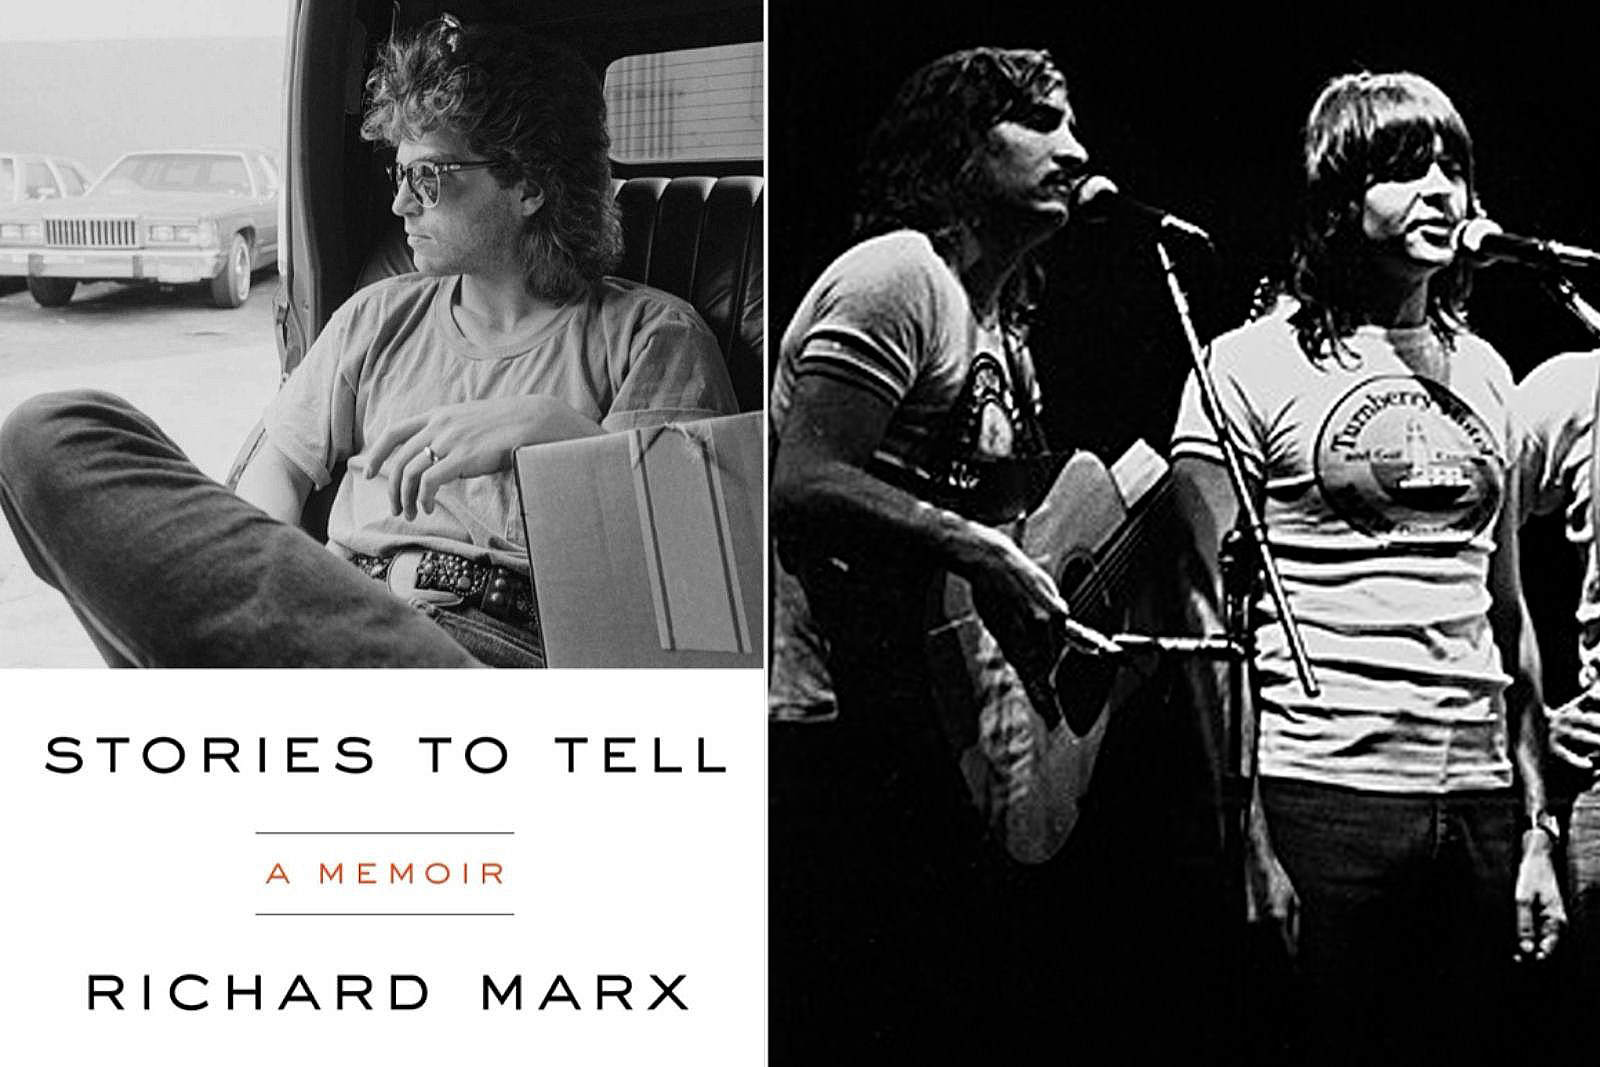 When Eagles Joined Richard Marx: Book Excerpt